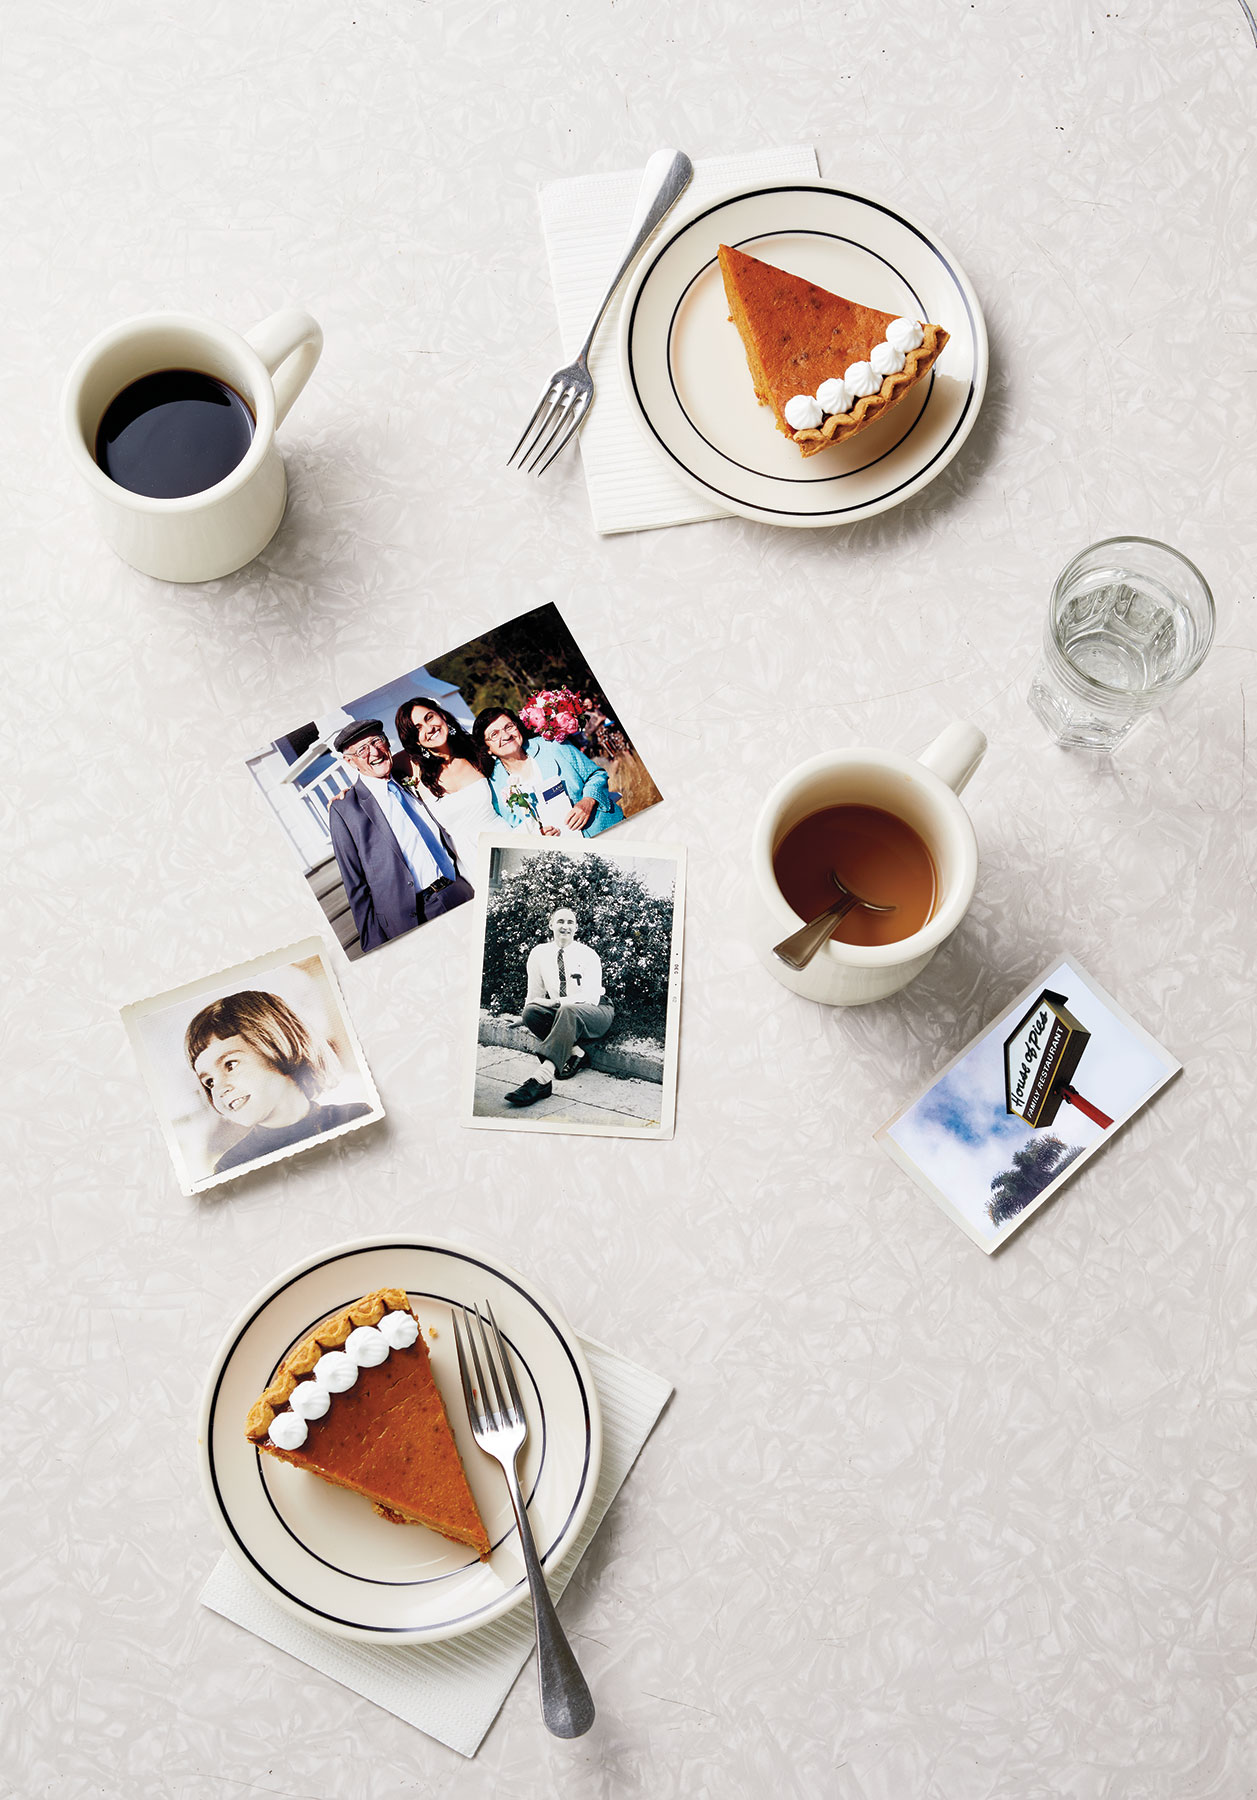 Diner table with photographs